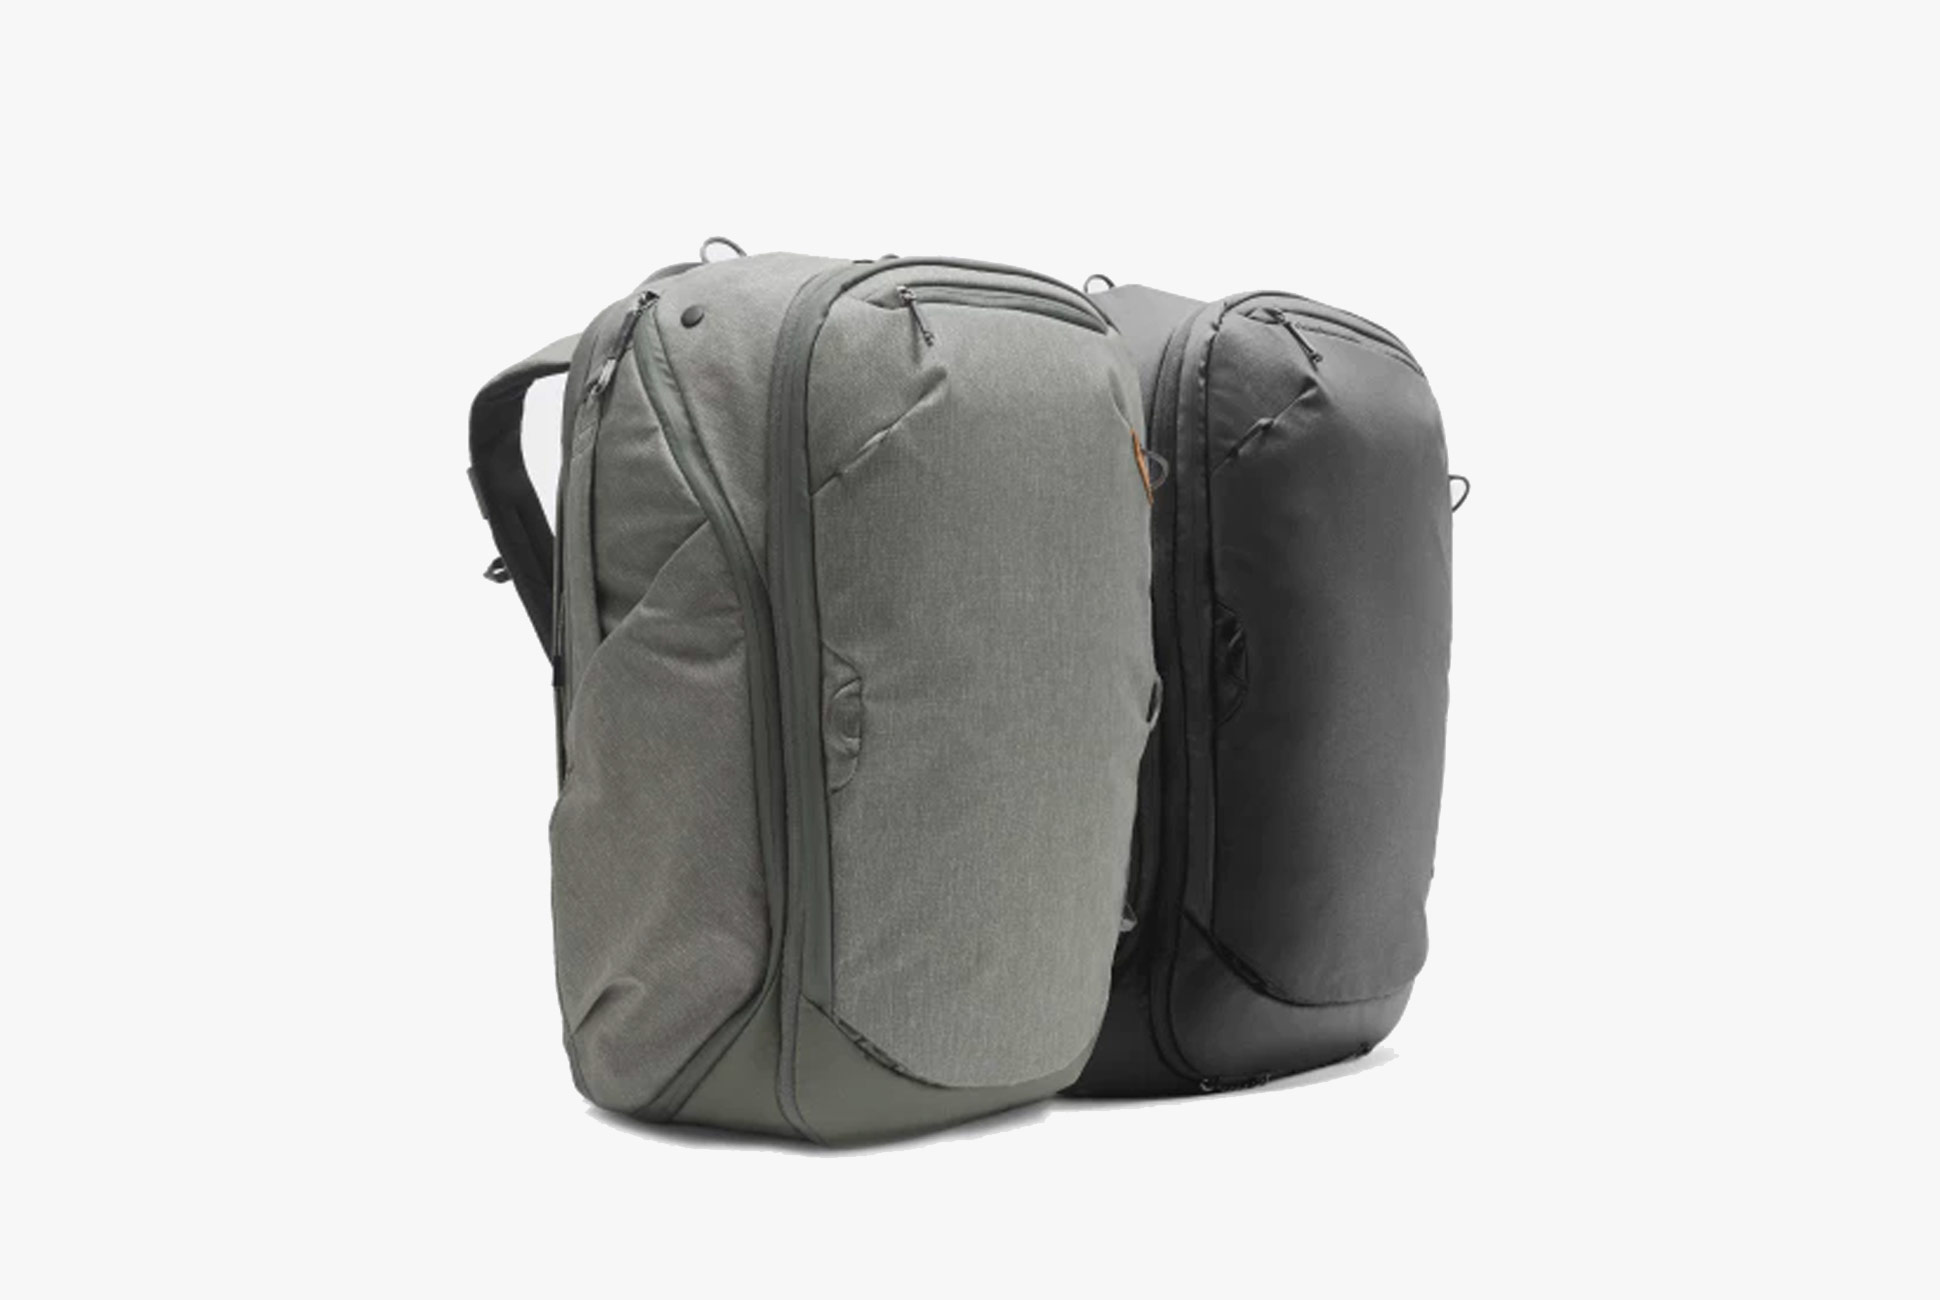 Sports And Outdoors Fjallraven Kanken Laptop 15ampquot Royal Blue Peak Design Revealed Its Newest Bag At Outdoor Retailer This Summer One Of The Few Items I Saw Show Thats Available Now